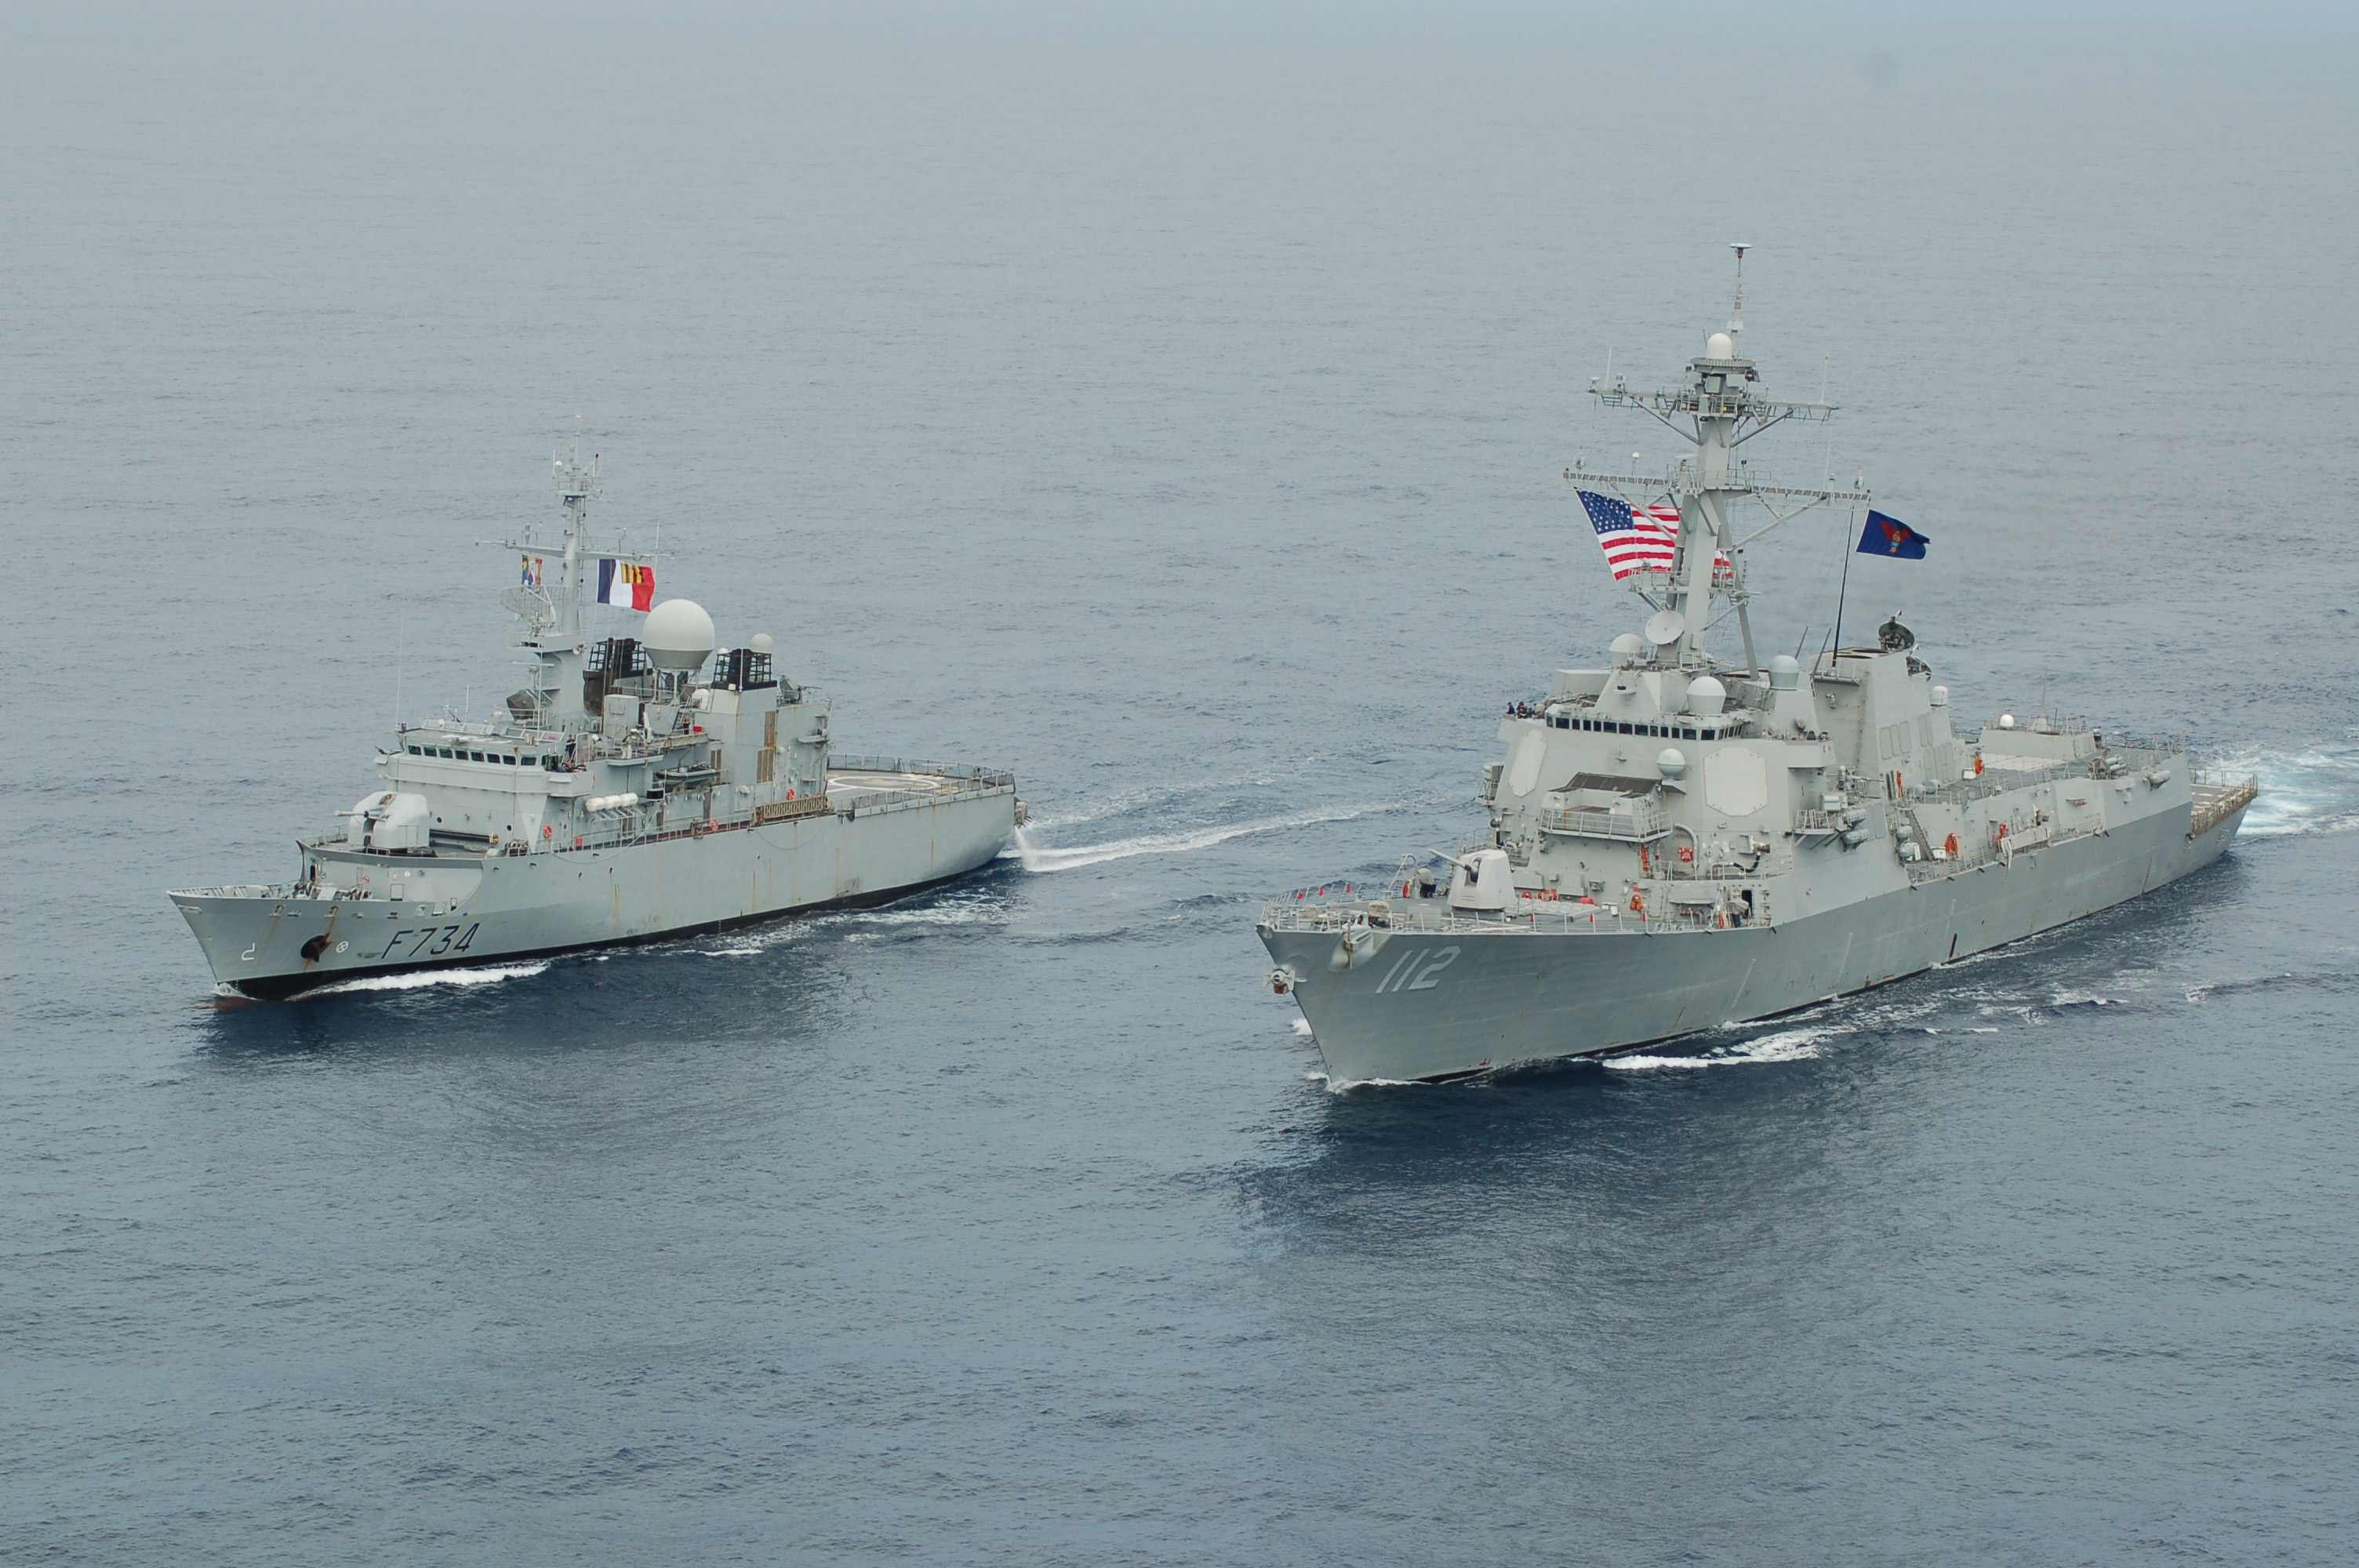 French Frigate FS Vendemiaire and US Destroyer USS Michael Murphy operating in the South China Sea